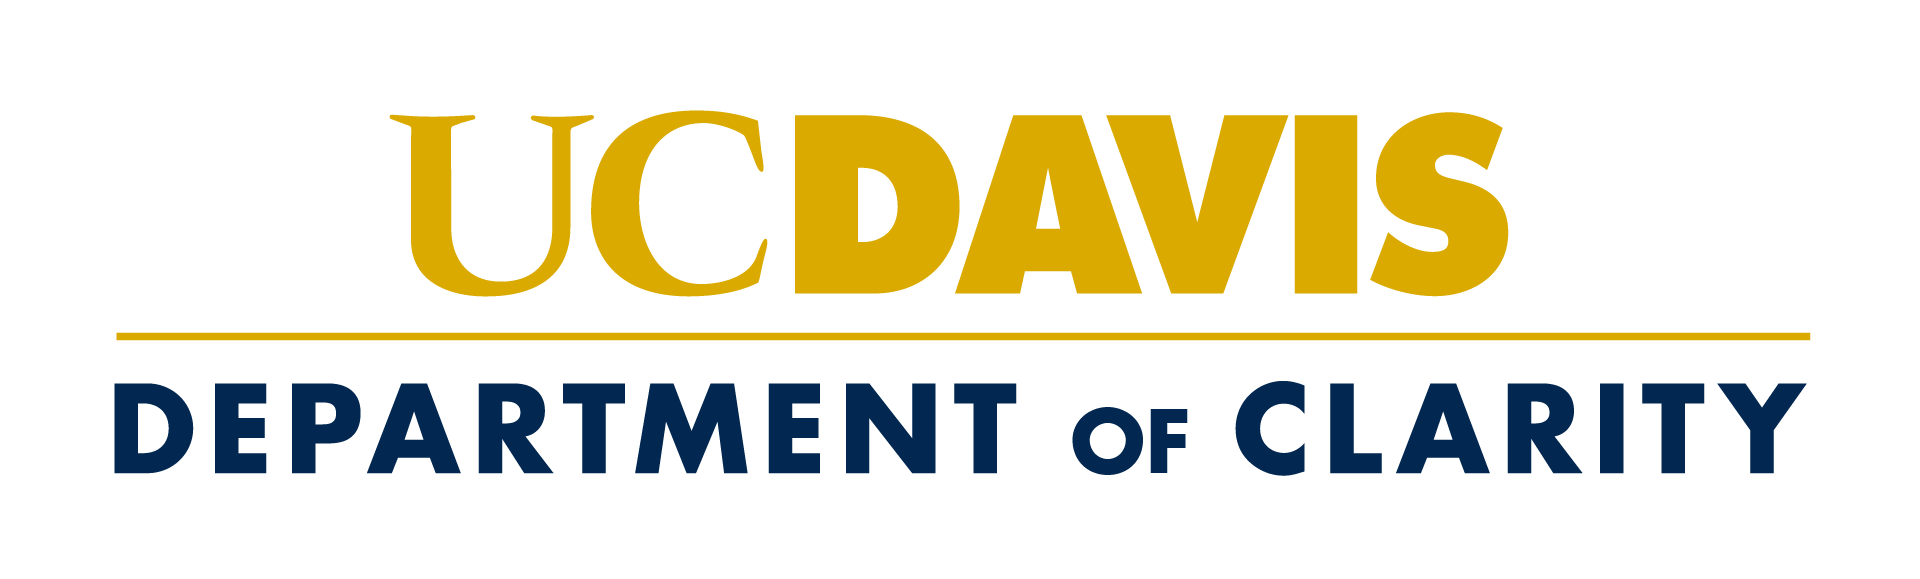 Unit signature showing only one level below the UC Davis wordmark